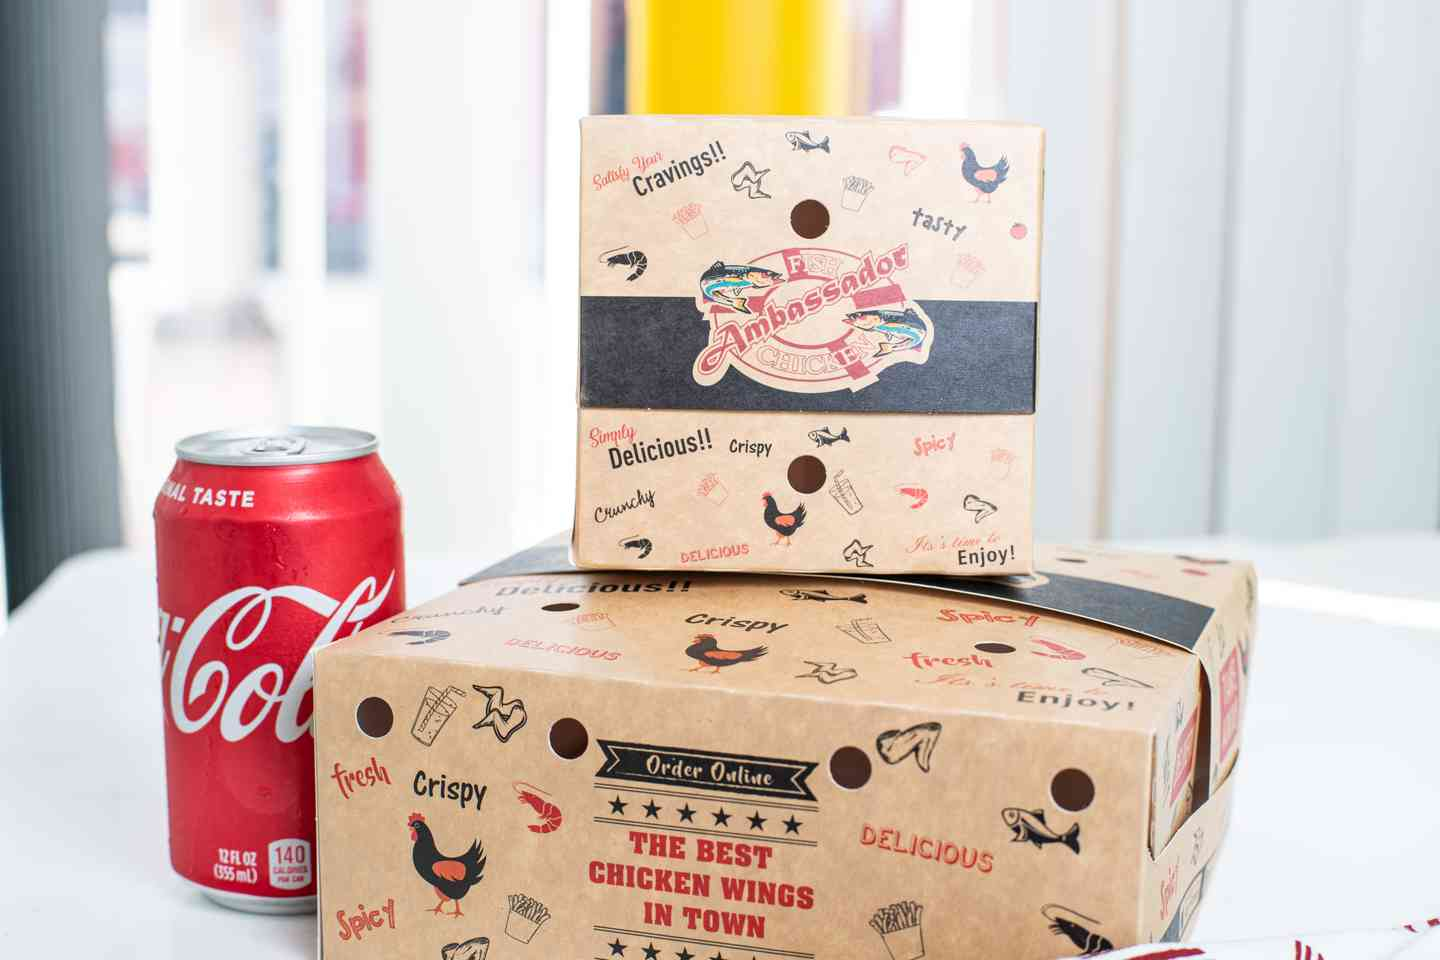 Packaged meals with a drink